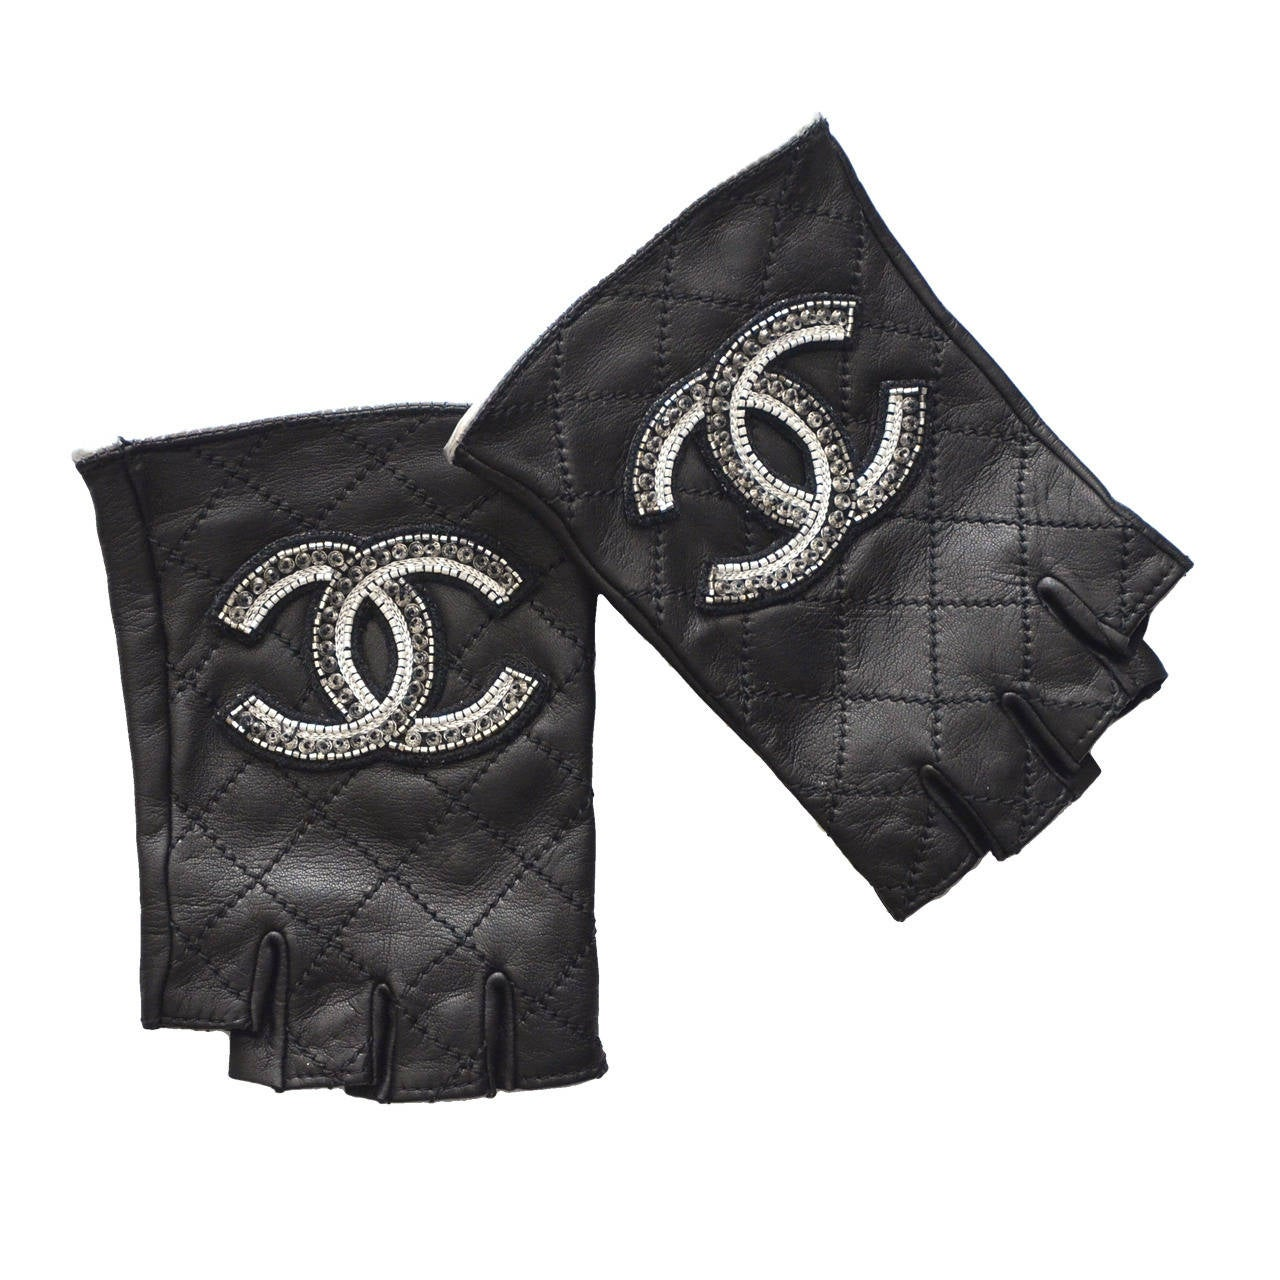 Chanel Embellished Gloves As Seen On Madonna, Fergie And ...